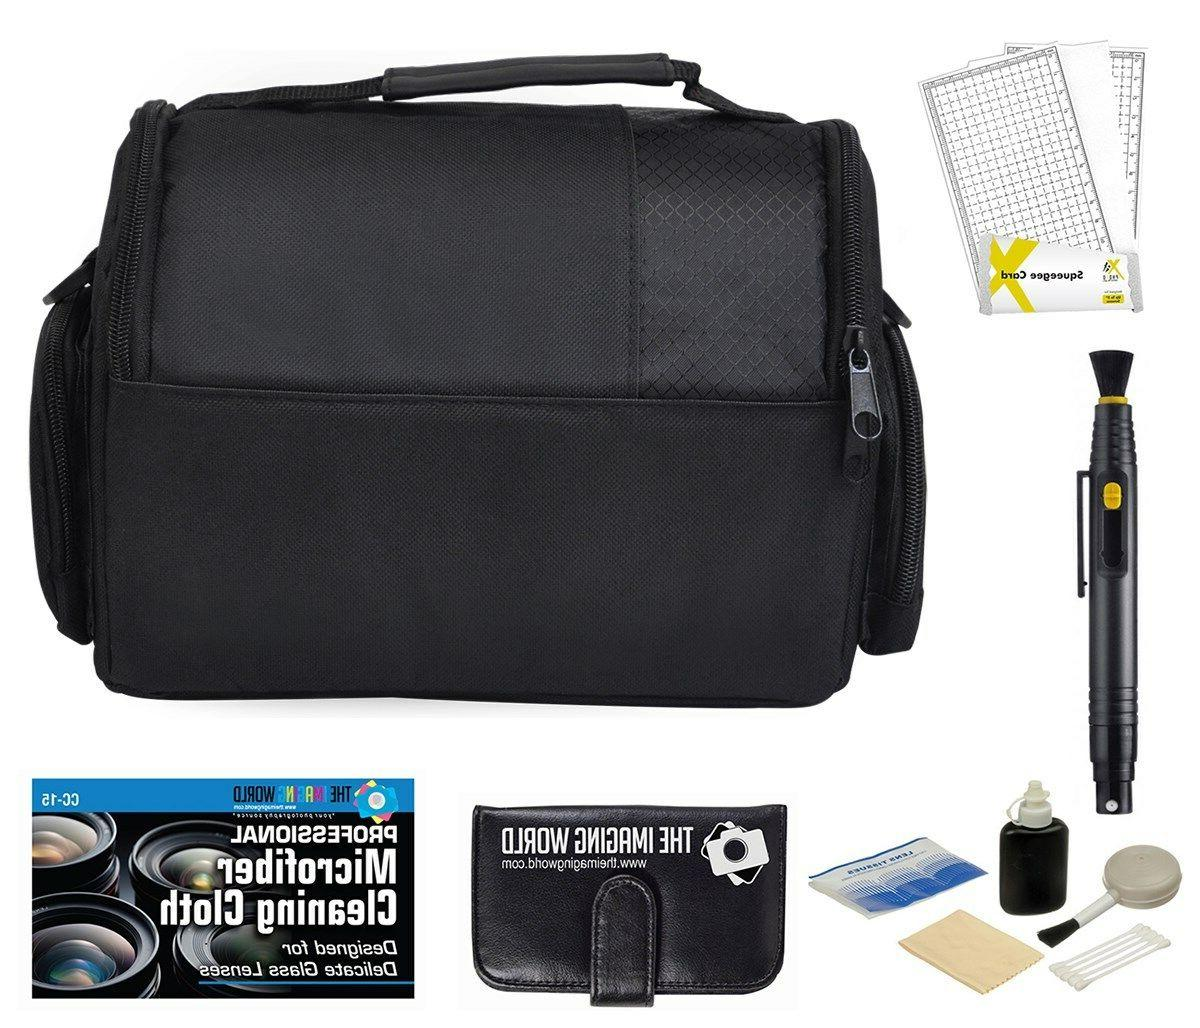 Camera Bag Case + Accessories Bundle for DSLR, Mirrorless, C